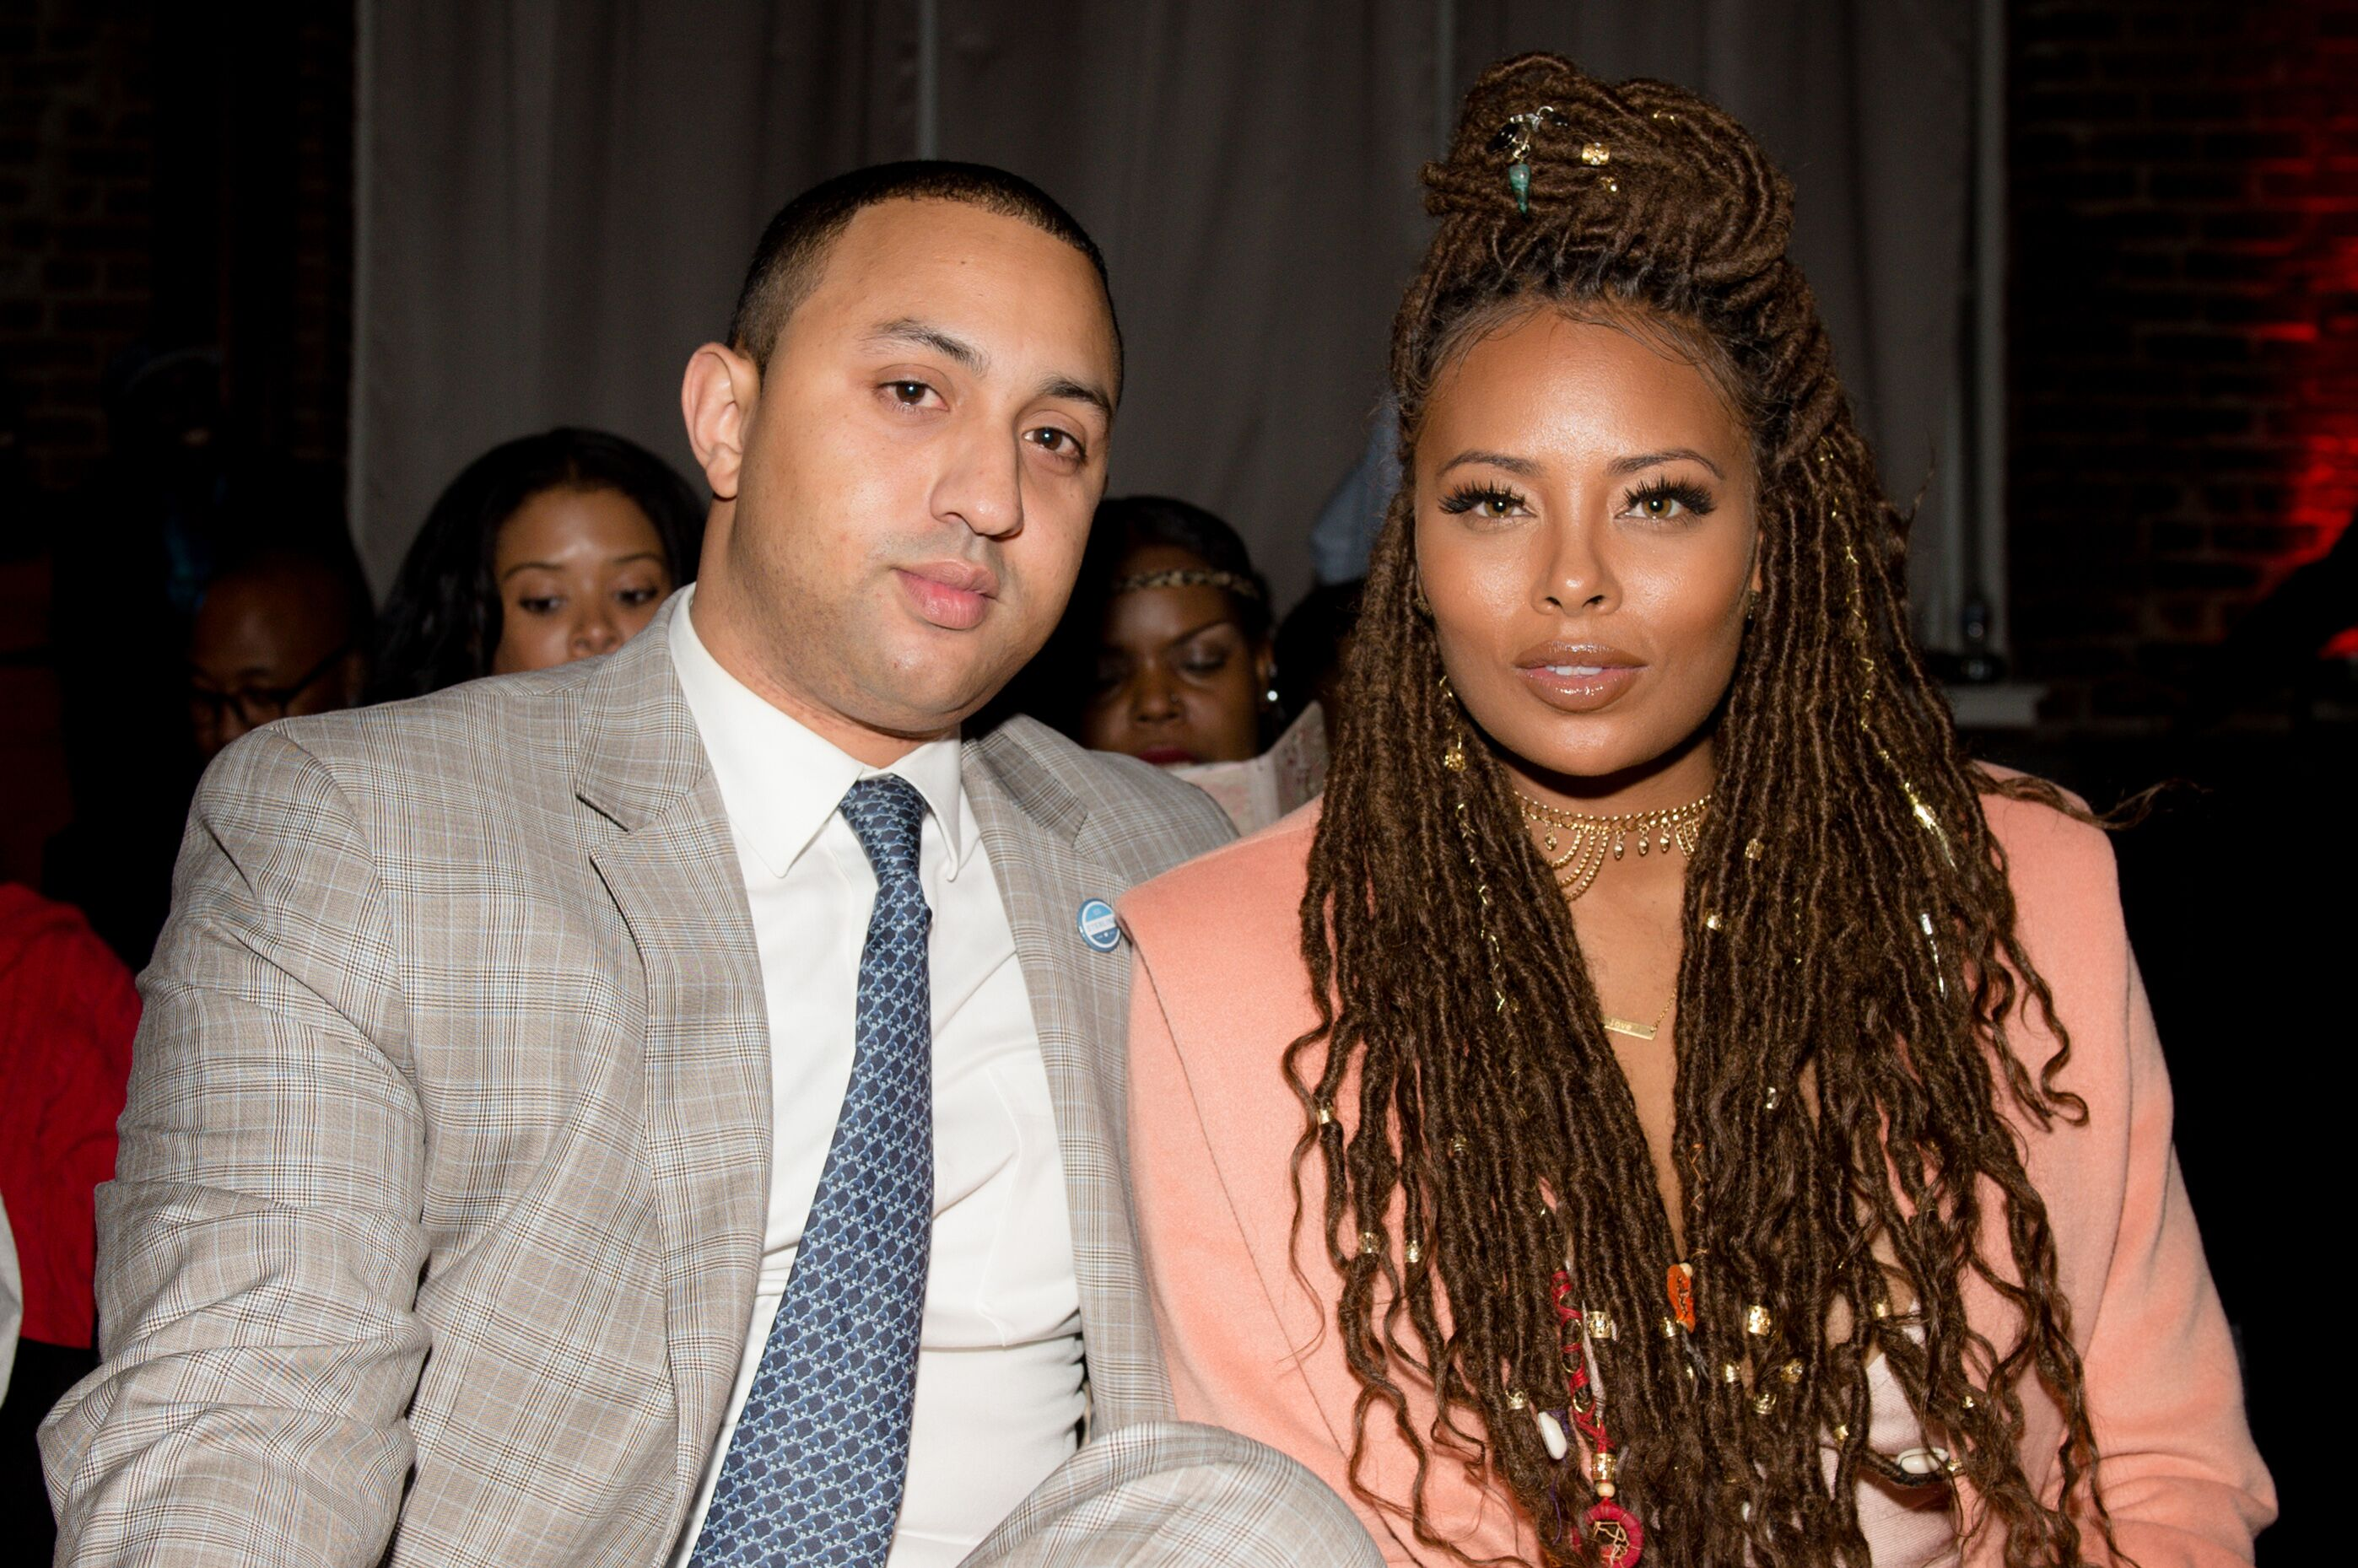 Eva Marcille and Michael Sterling attend an event together | Source: Getty Images/GlobalImagesUkraine